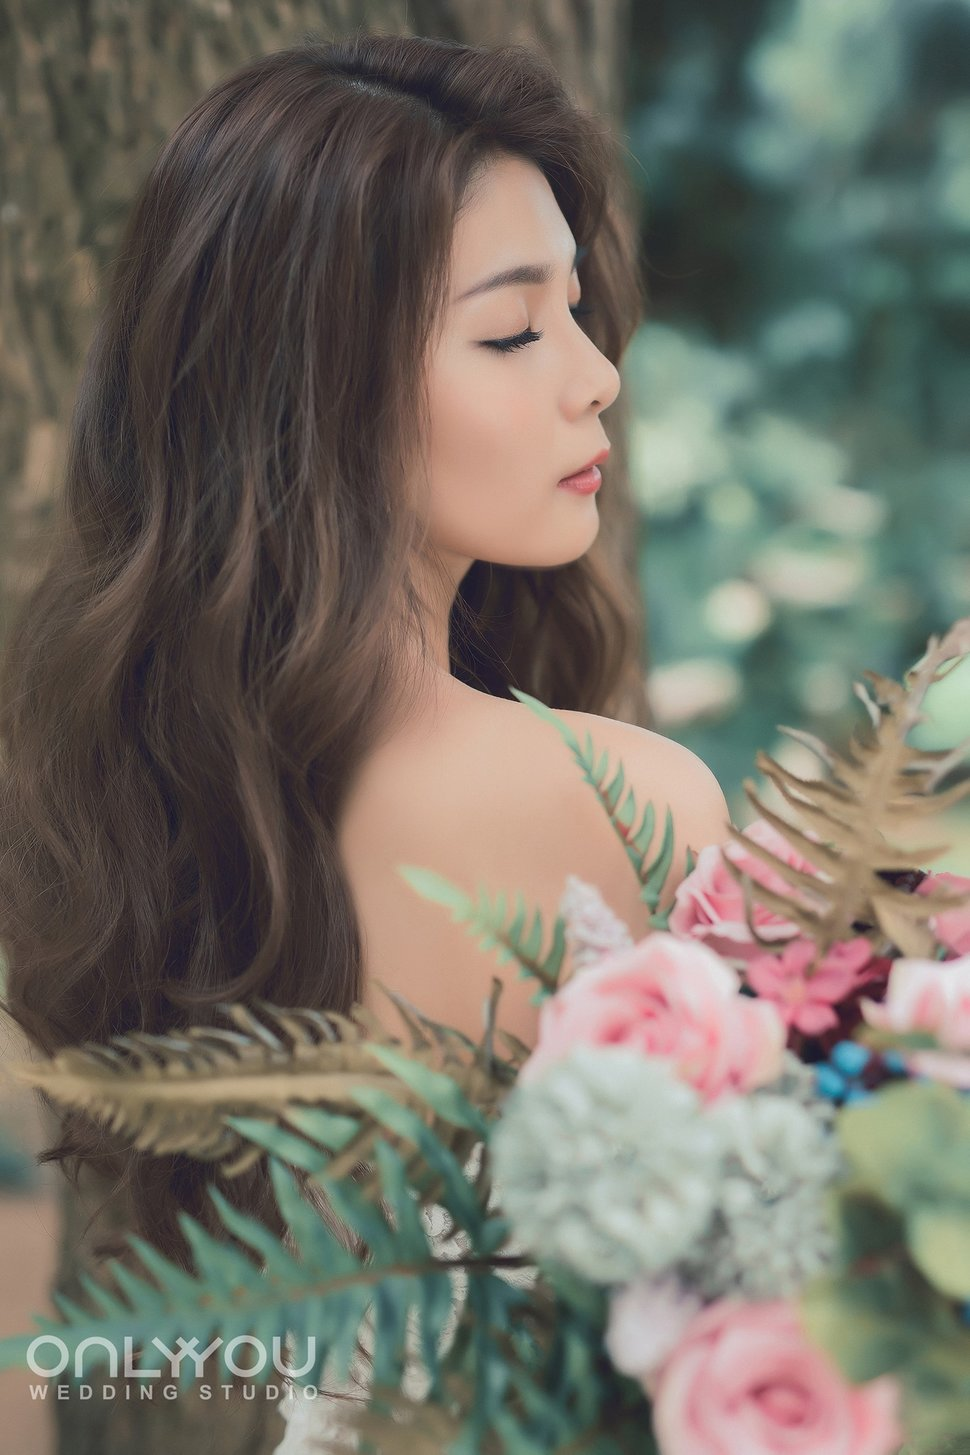 69118937_2333339470055019_5581314566702235648_o - ONLY YOU 唯你婚紗攝影《結婚吧》